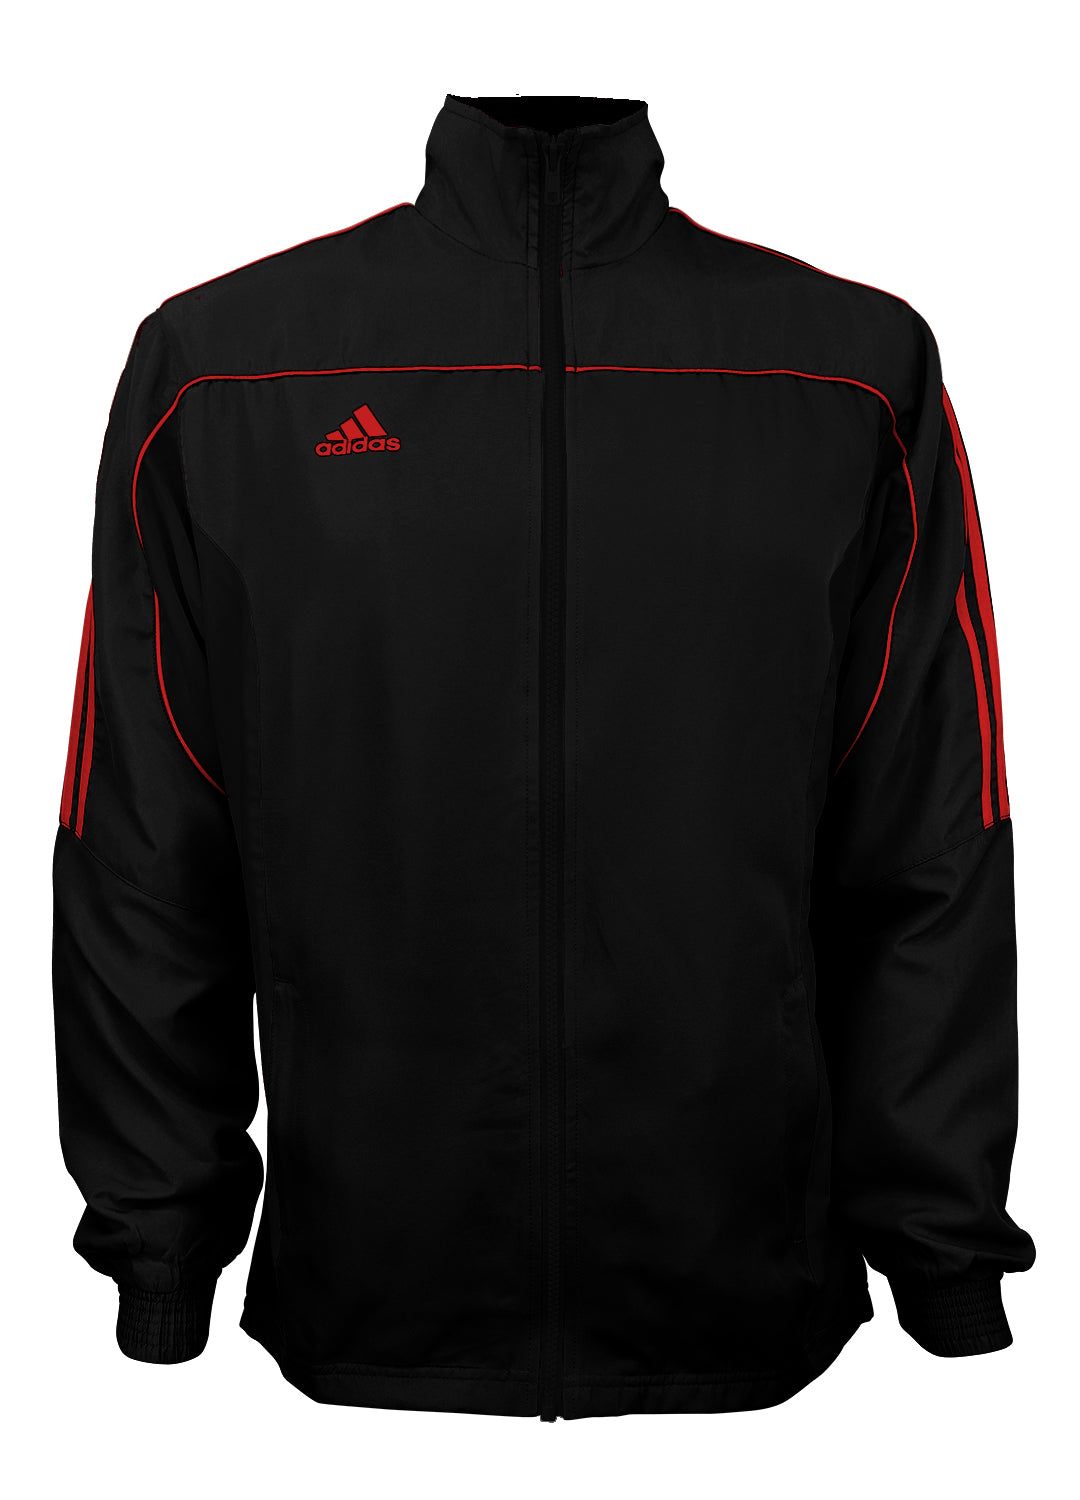 adidas Black with Red Stripes Windbreaker Style Team Jacket Front View